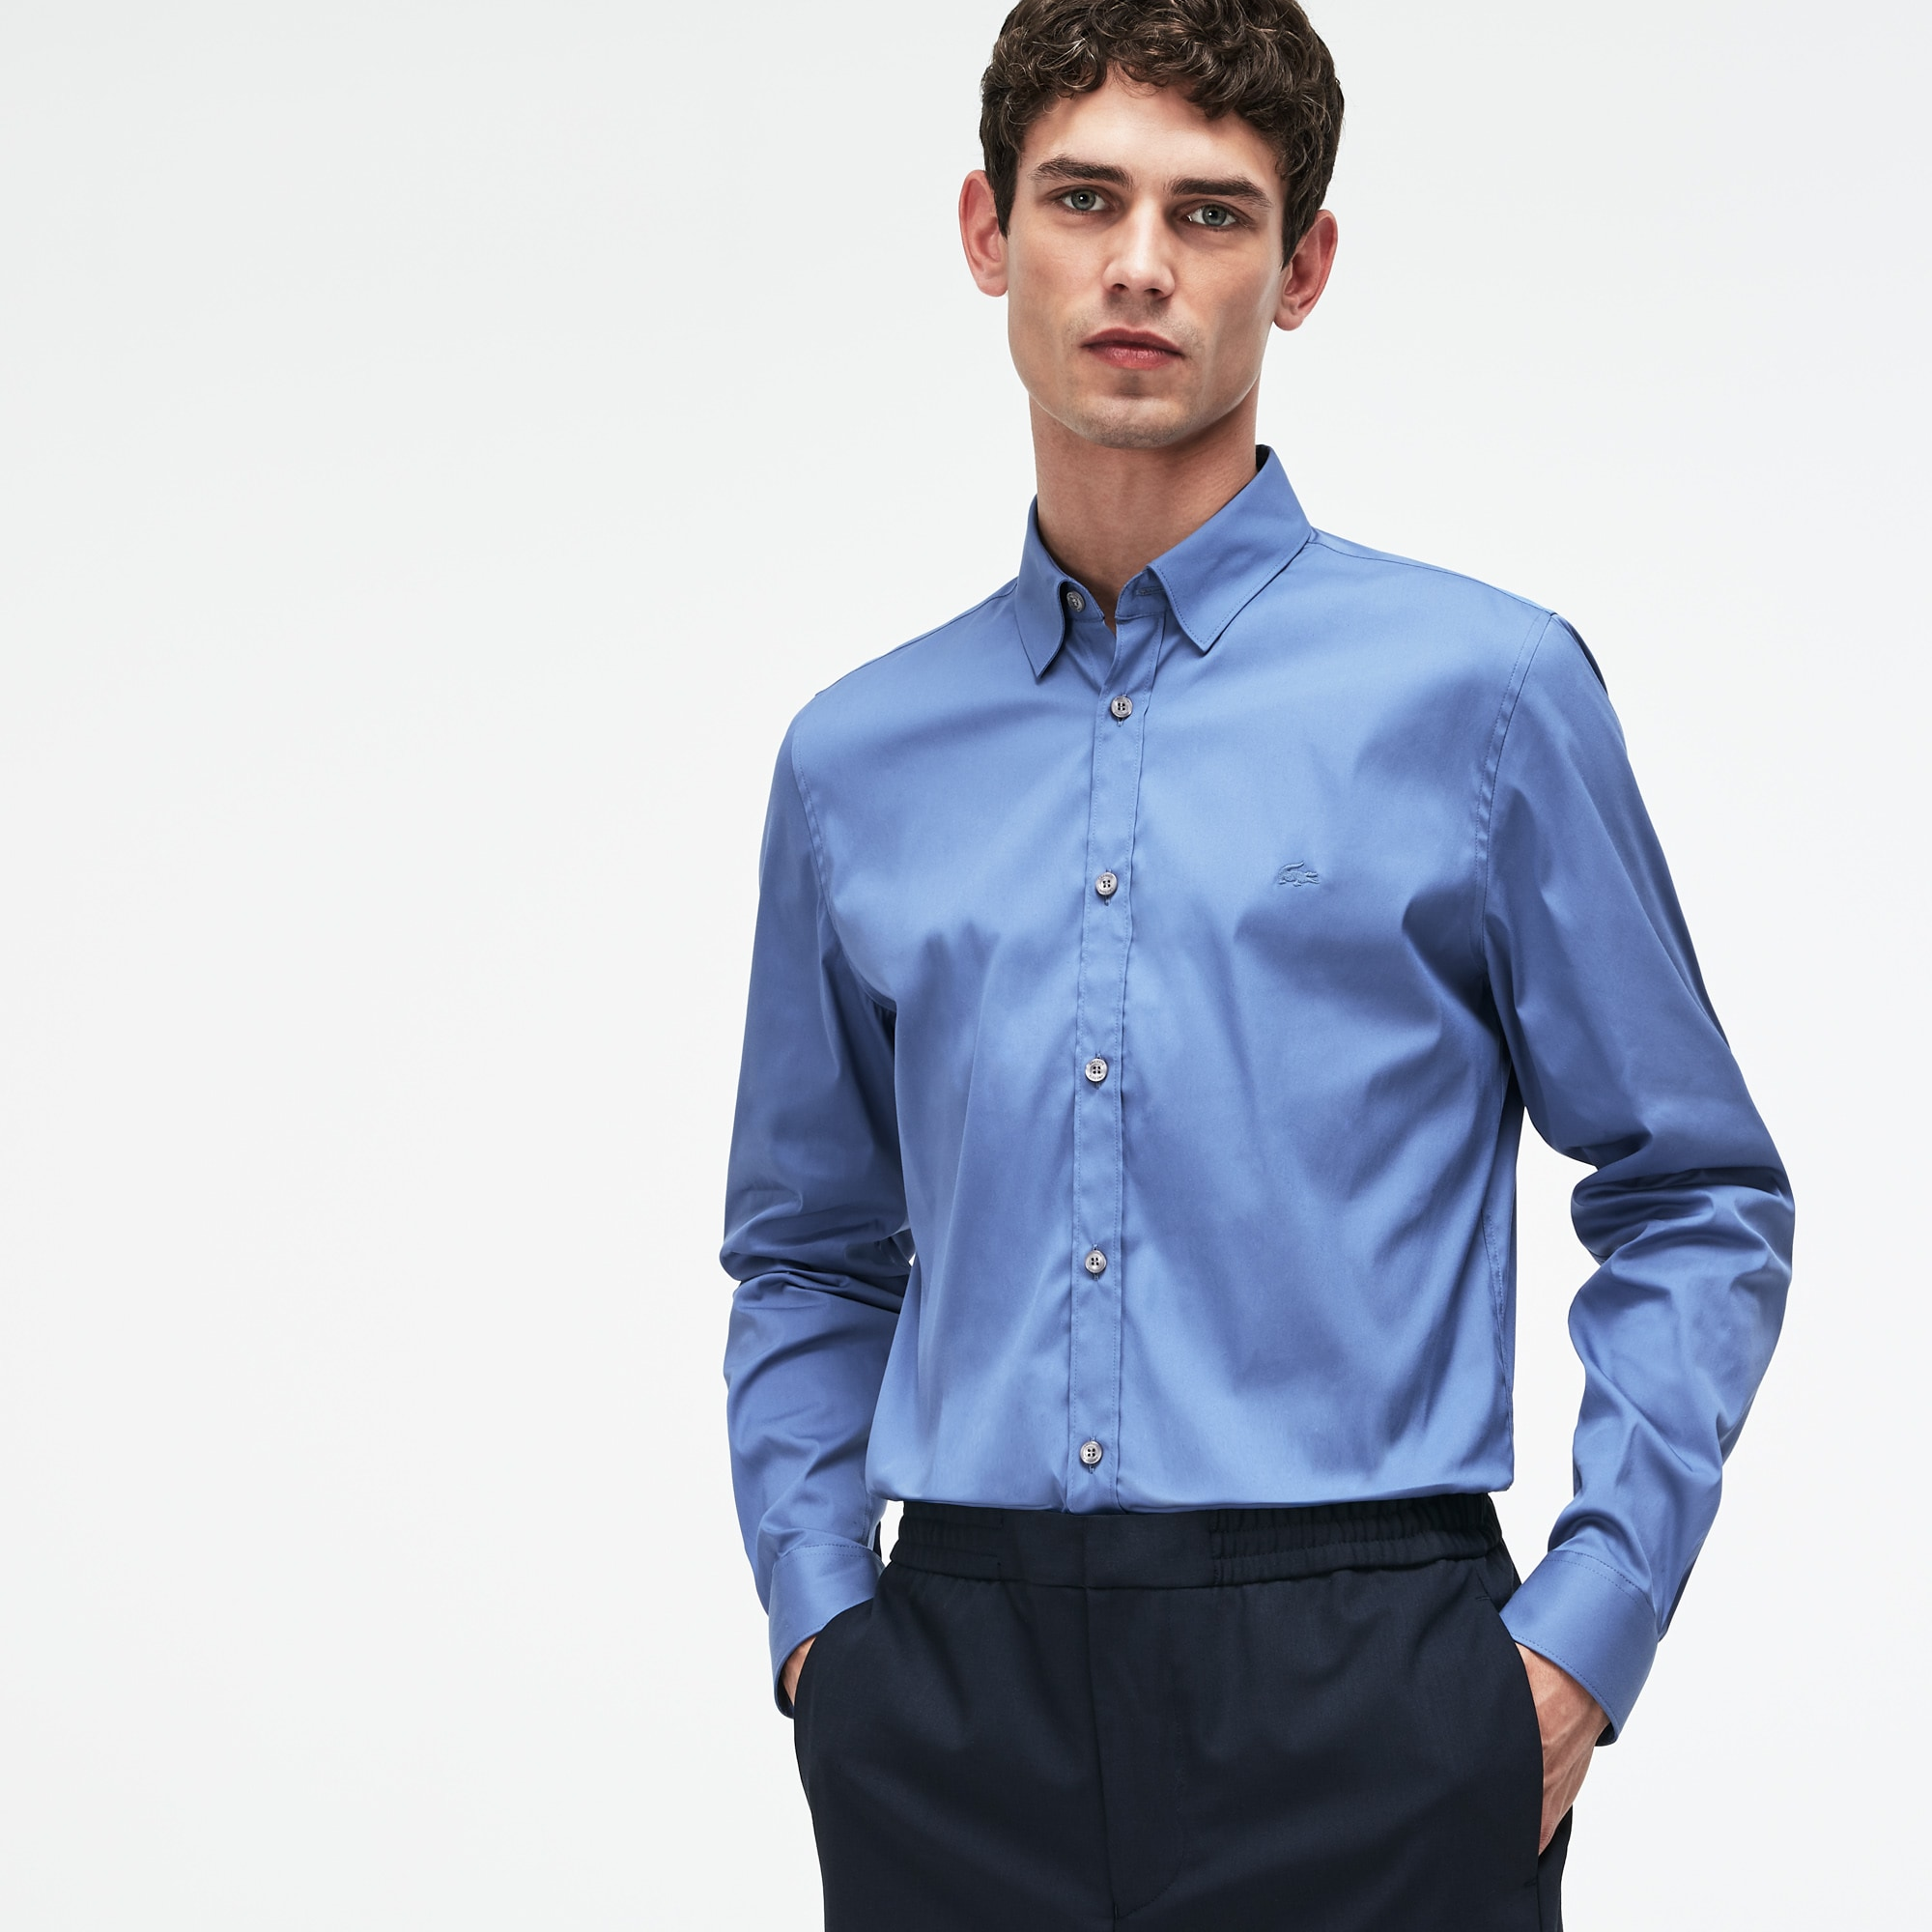 c420050268 Men'S Slim Fit Stretch Cotton Poplin Shirt in Avon